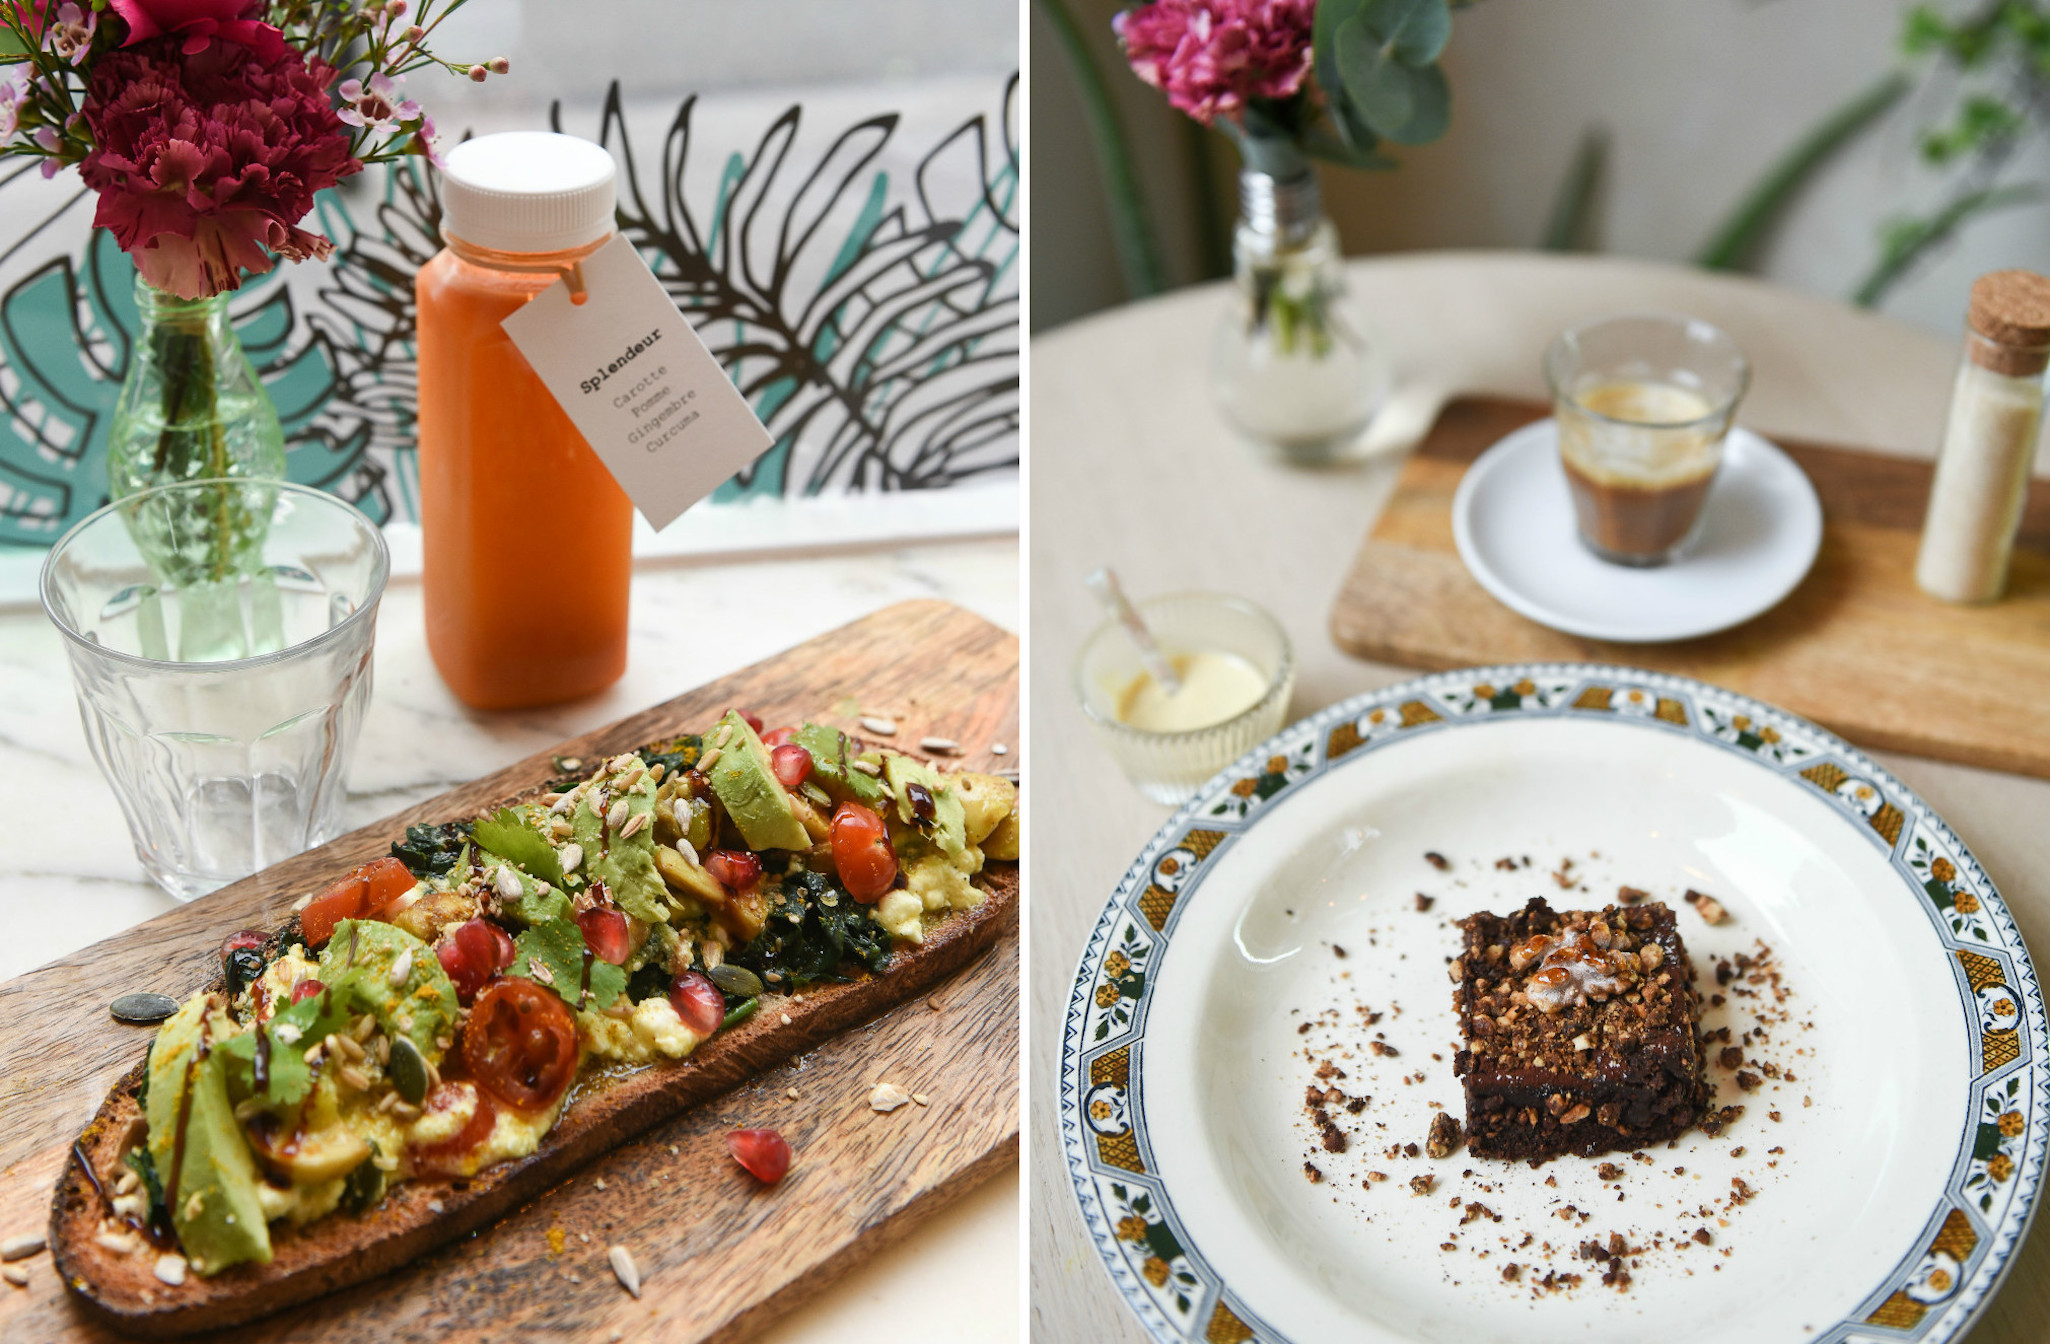 Veggie-friendly Dining at Paris' Abbatoir Vegetale